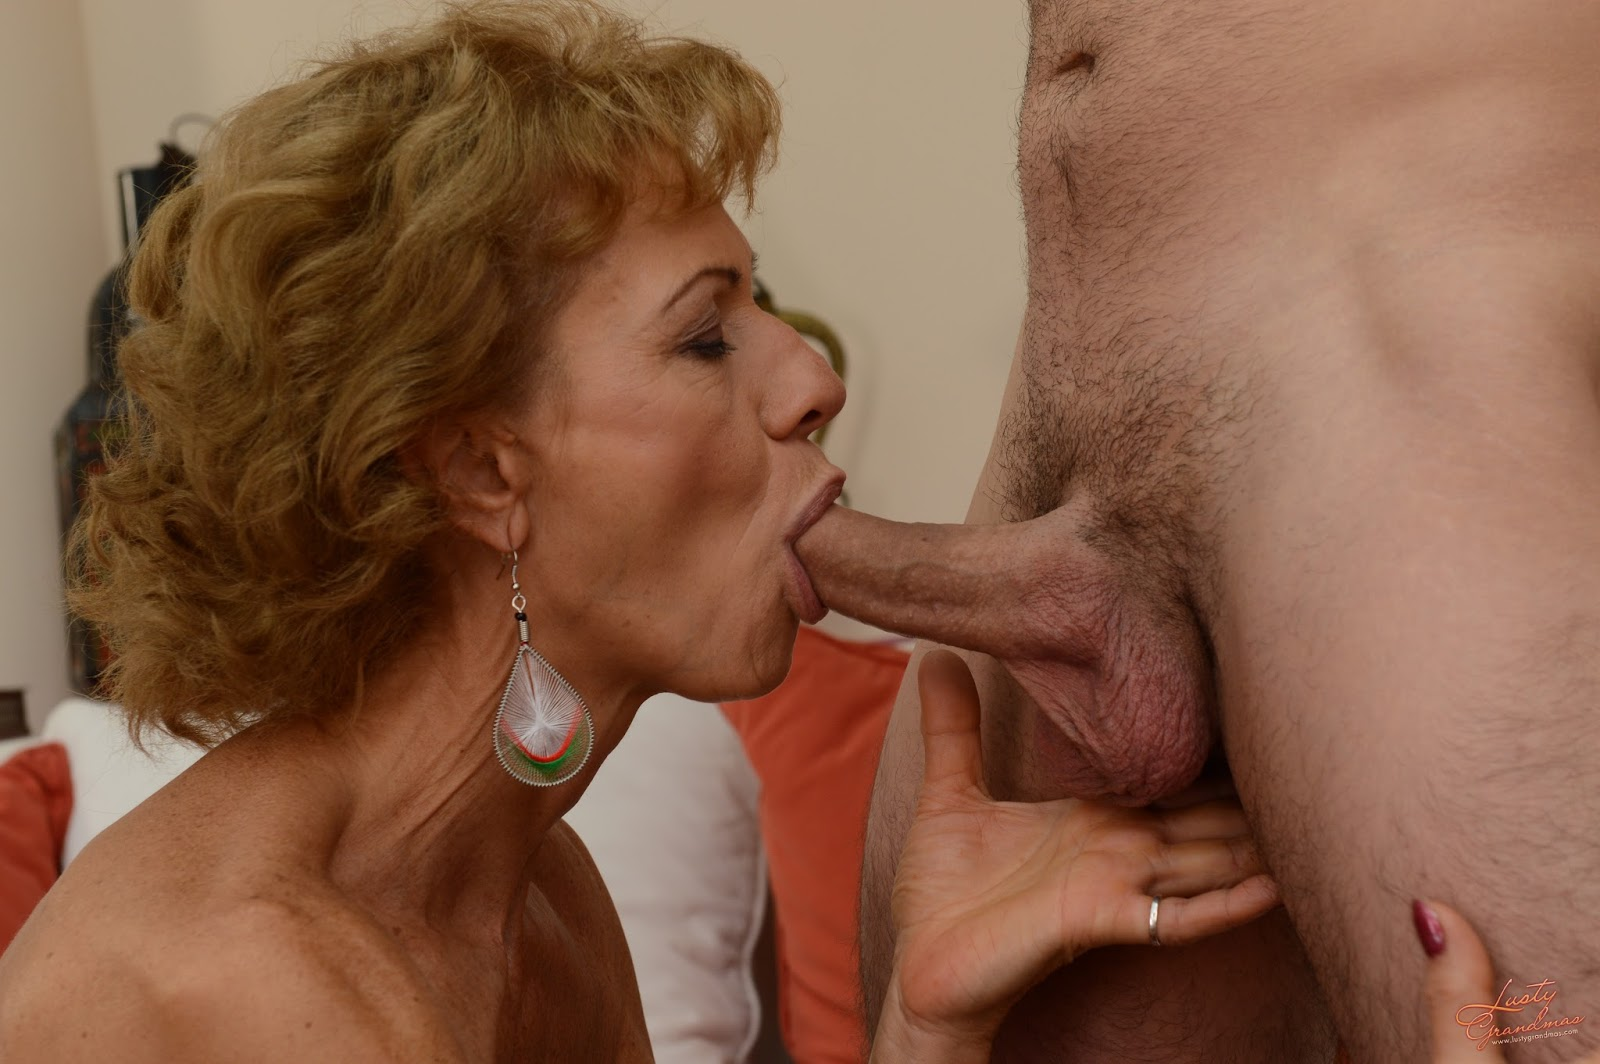 67 year old cougar getting fucked by 29 year old cub 2